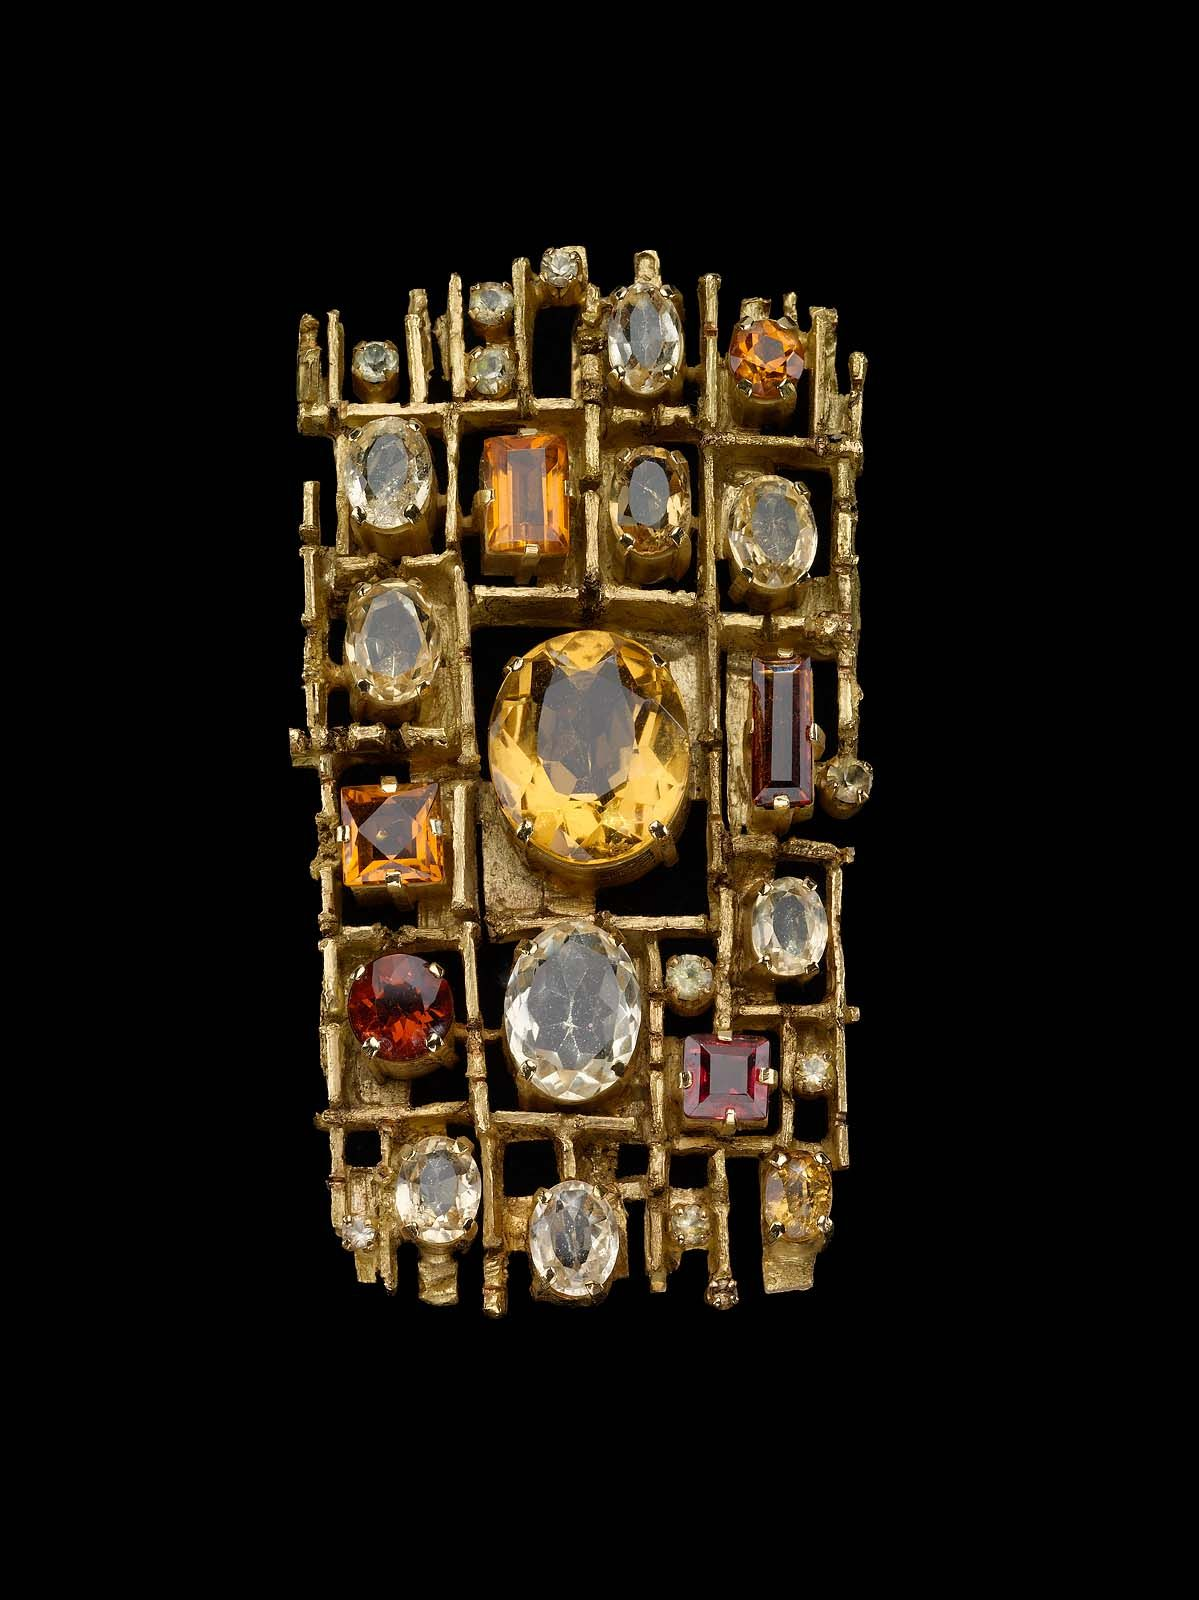 Rectangular gemset pendantbrooch the brooch consists of a